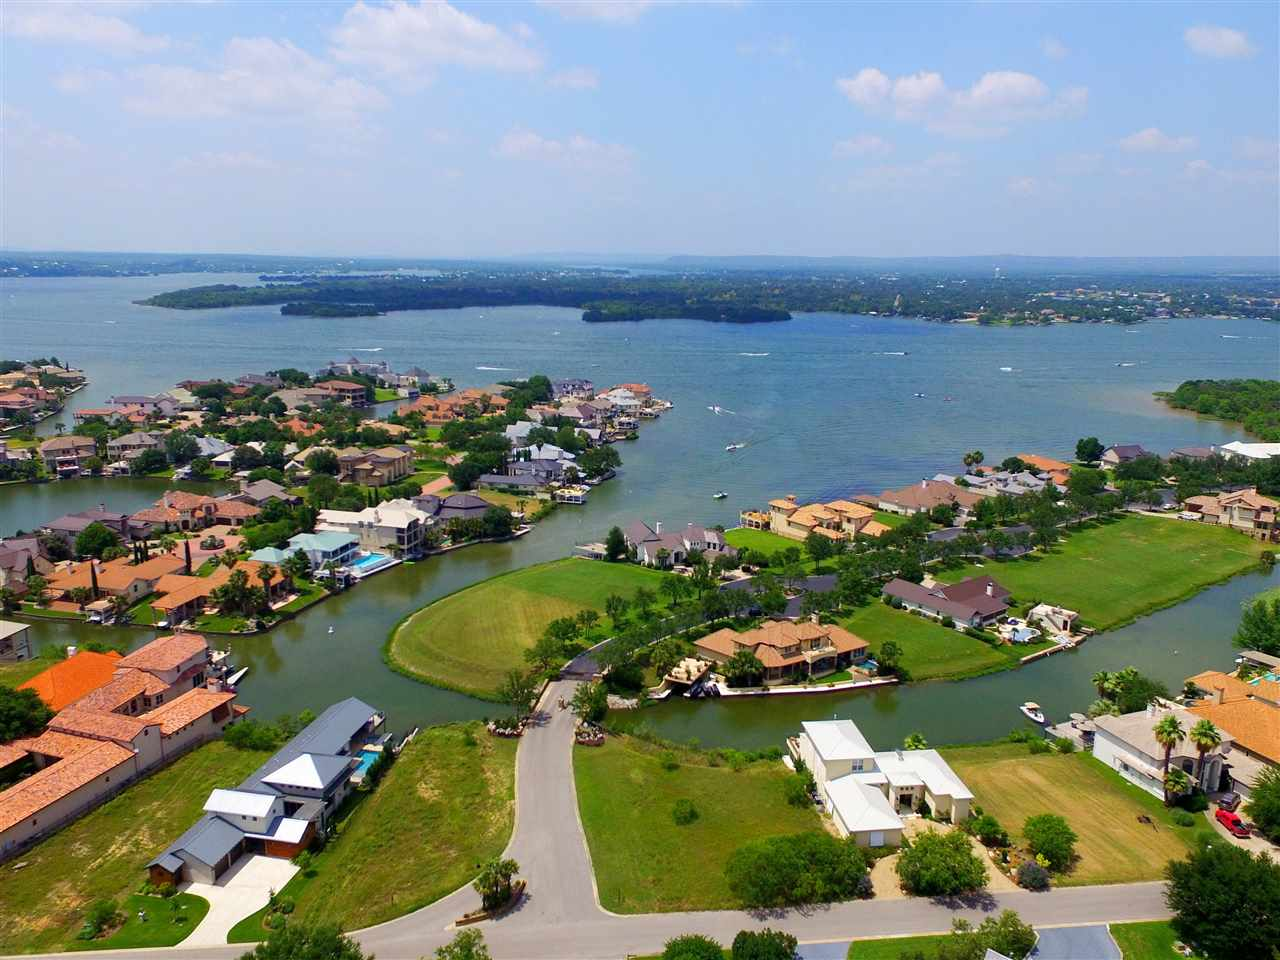 W29042 Wennmohs Place Horseshoe Bay Real Estate Home Listings - RE/MAX Horseshoe Bay Resort Sales, Co. Lake LBJ Real Estate